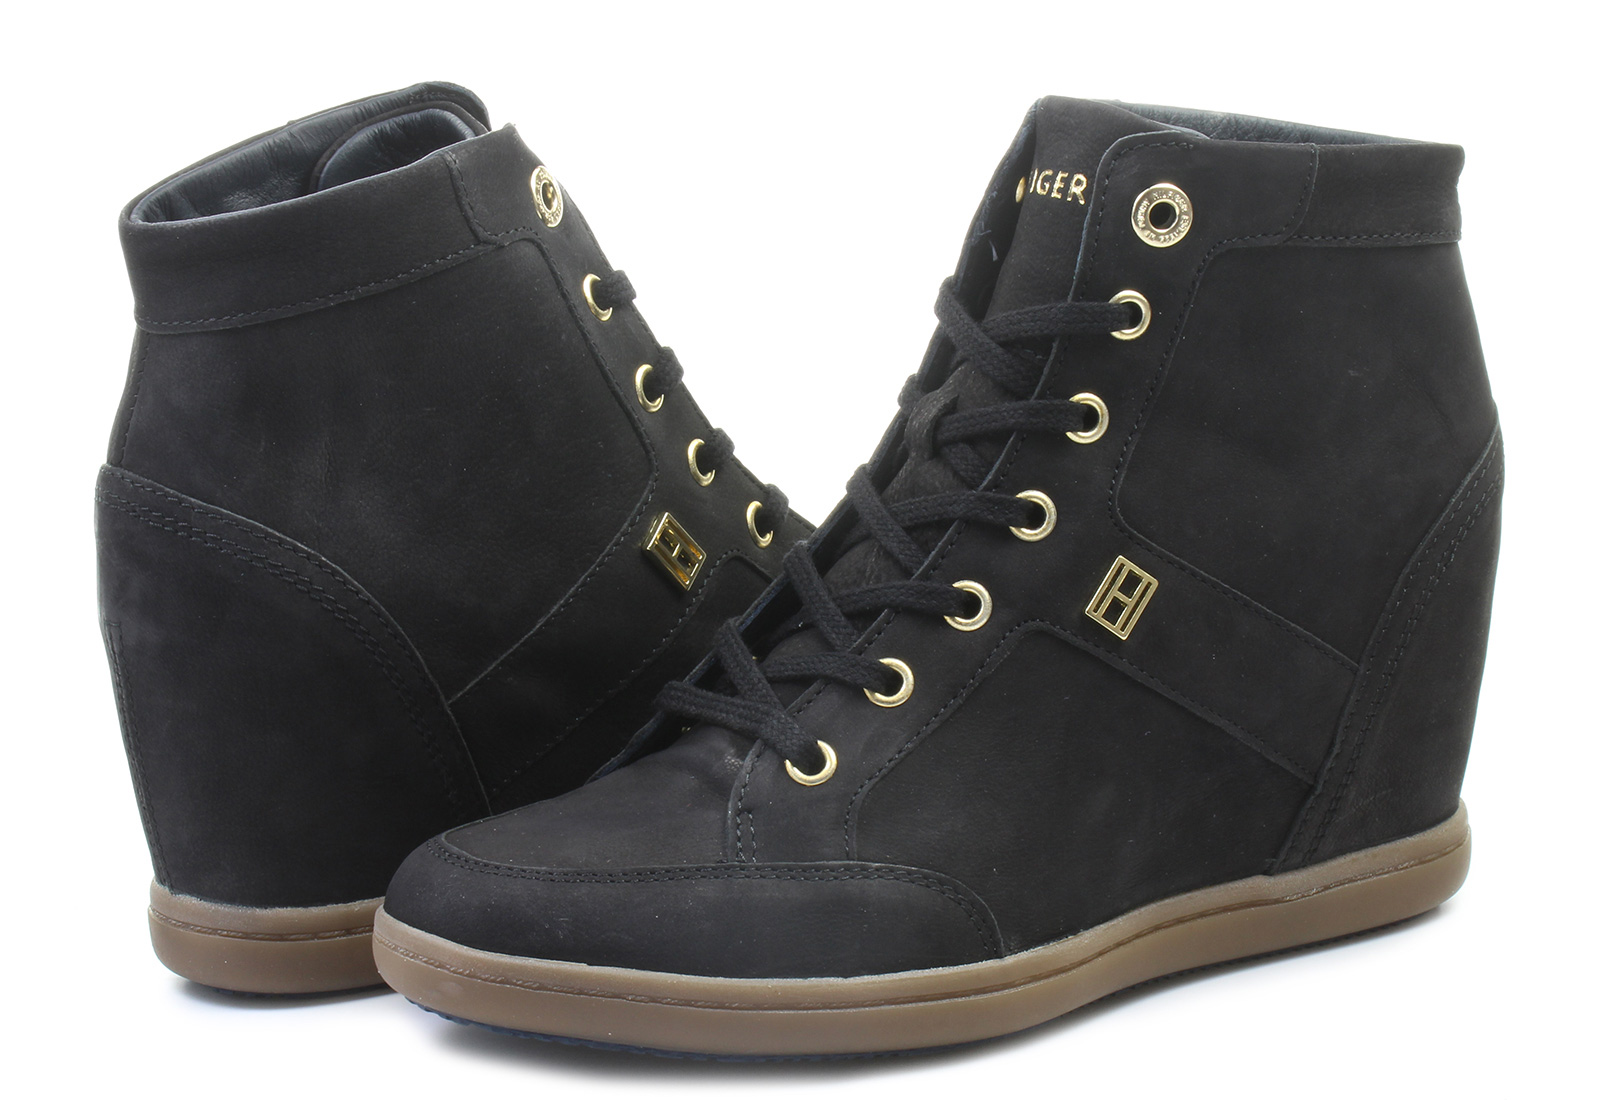 Tommy Hilfiger Shoes - Stella 5n - 14f-7811-990 - Online shop for sneakers, shoes and boots